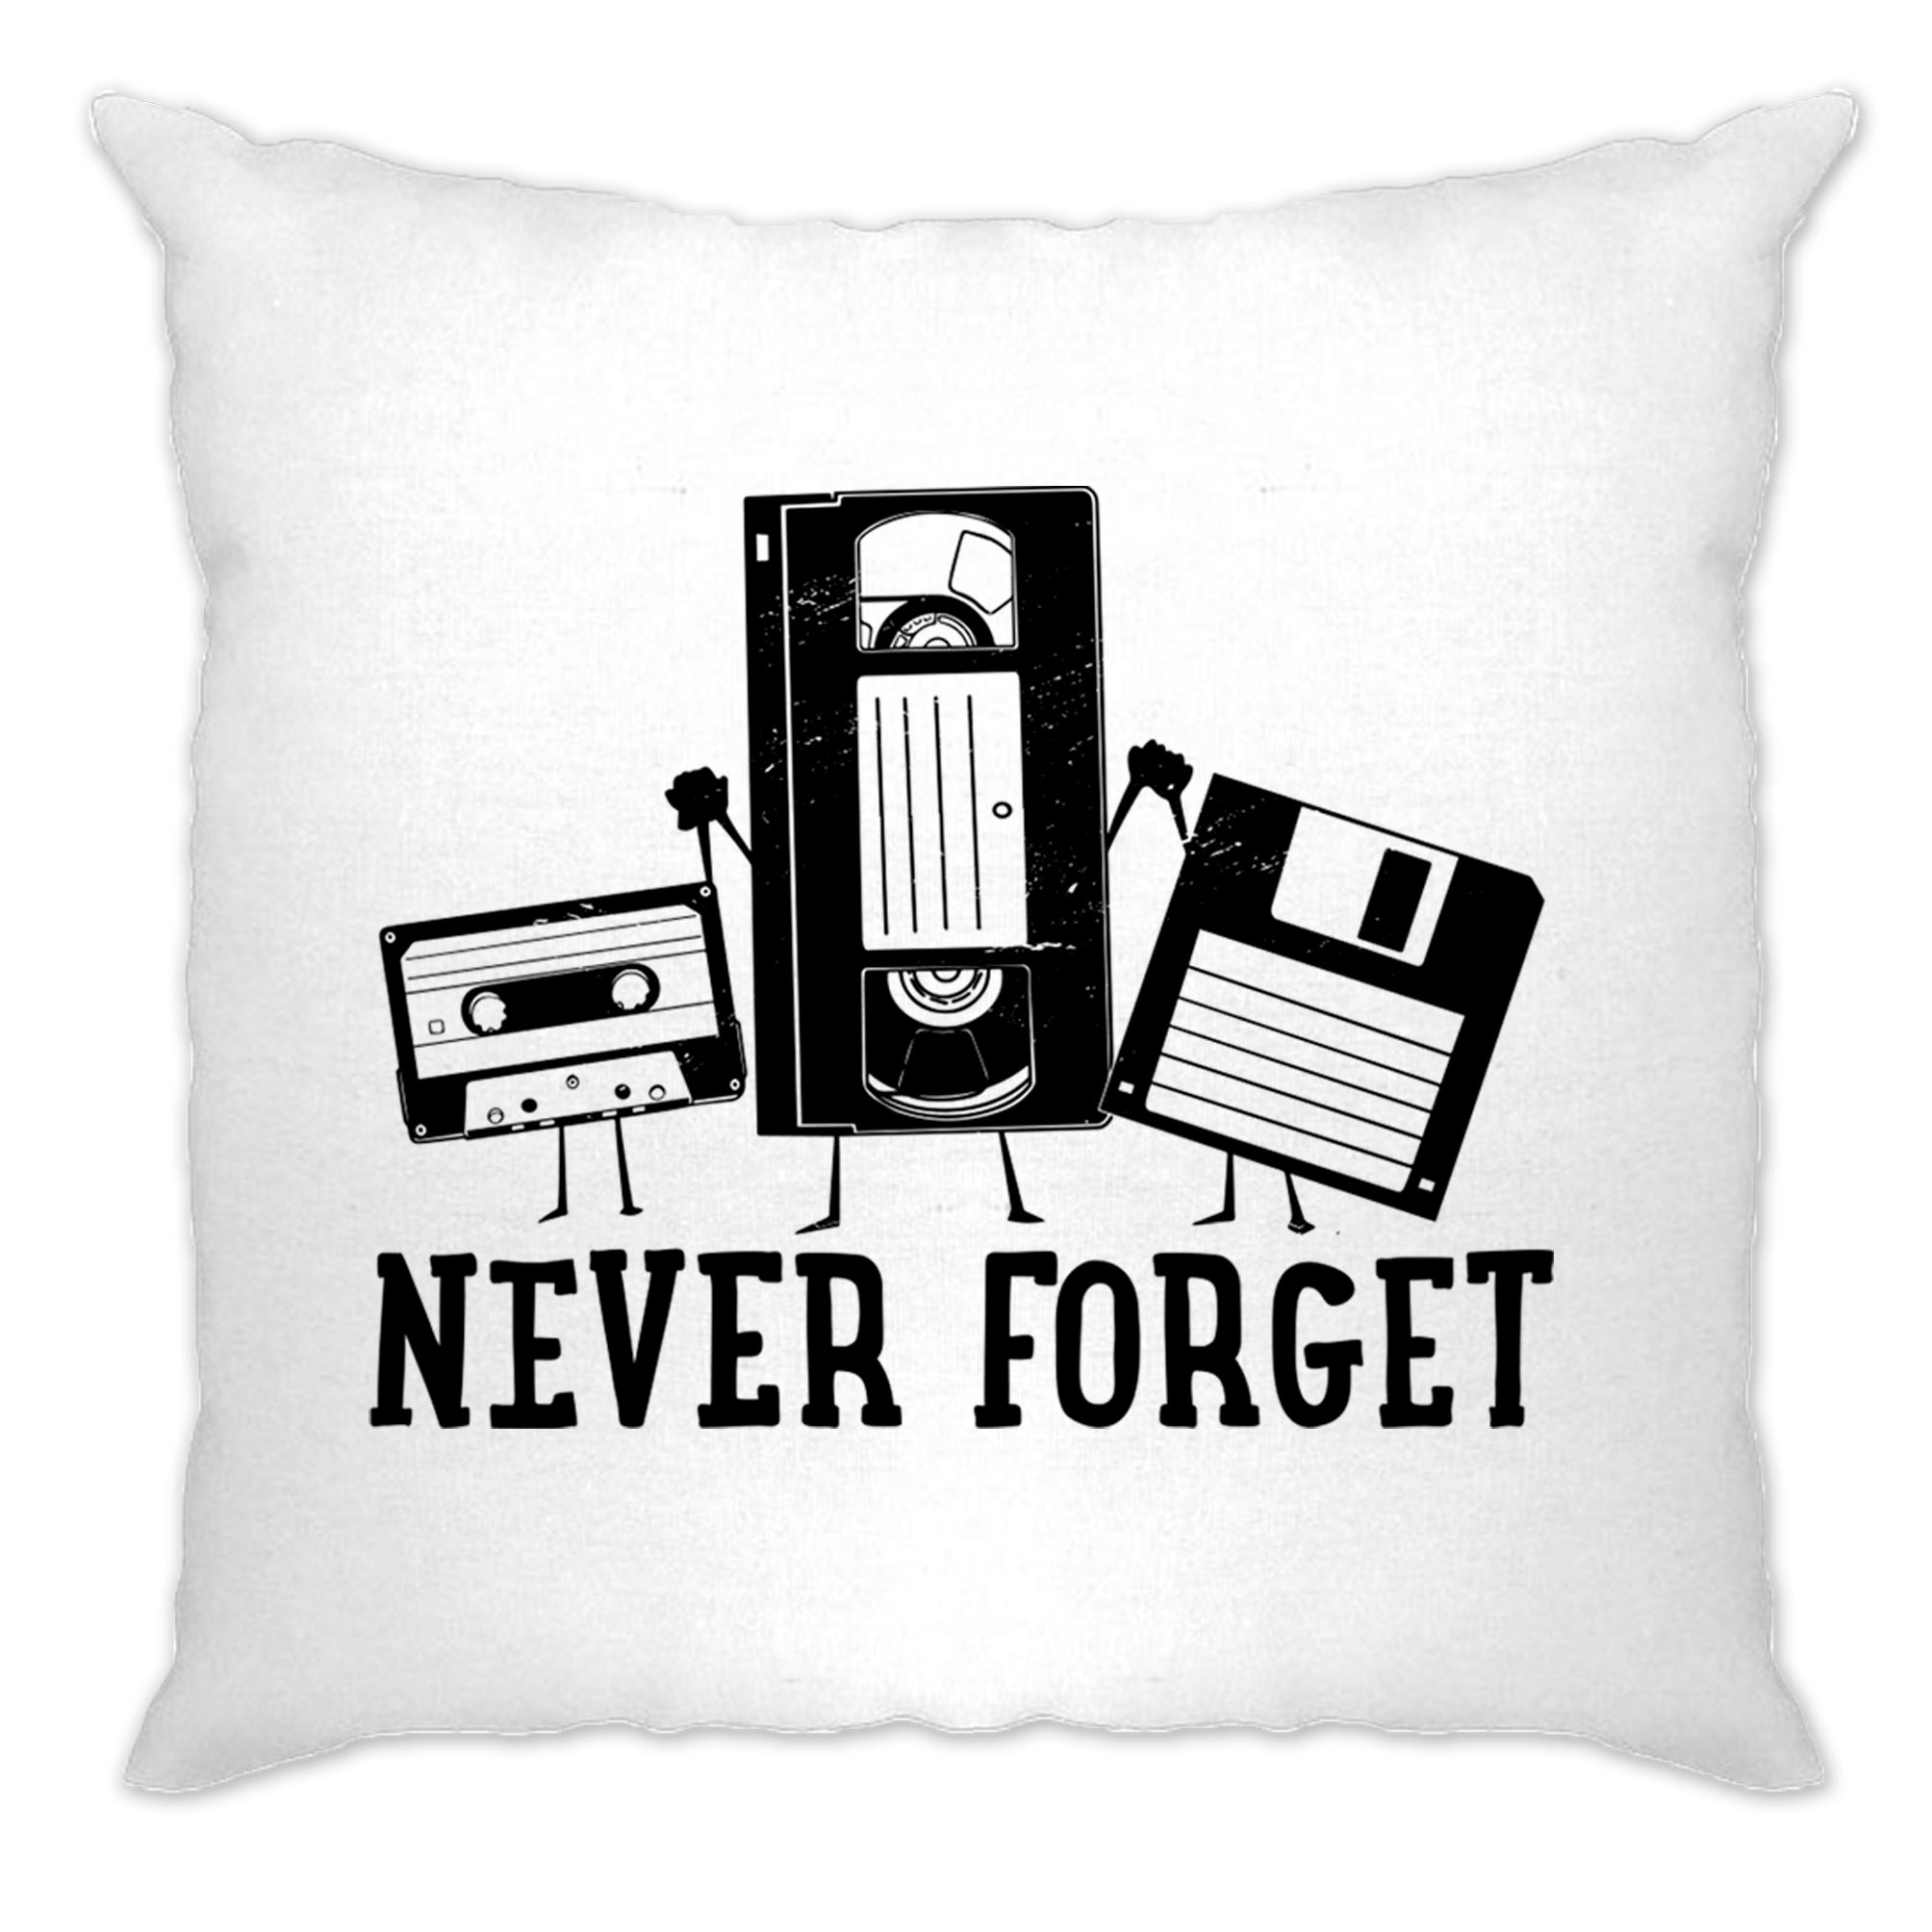 Retro Cushion Cover Never Forget VHS and Floppy Discs